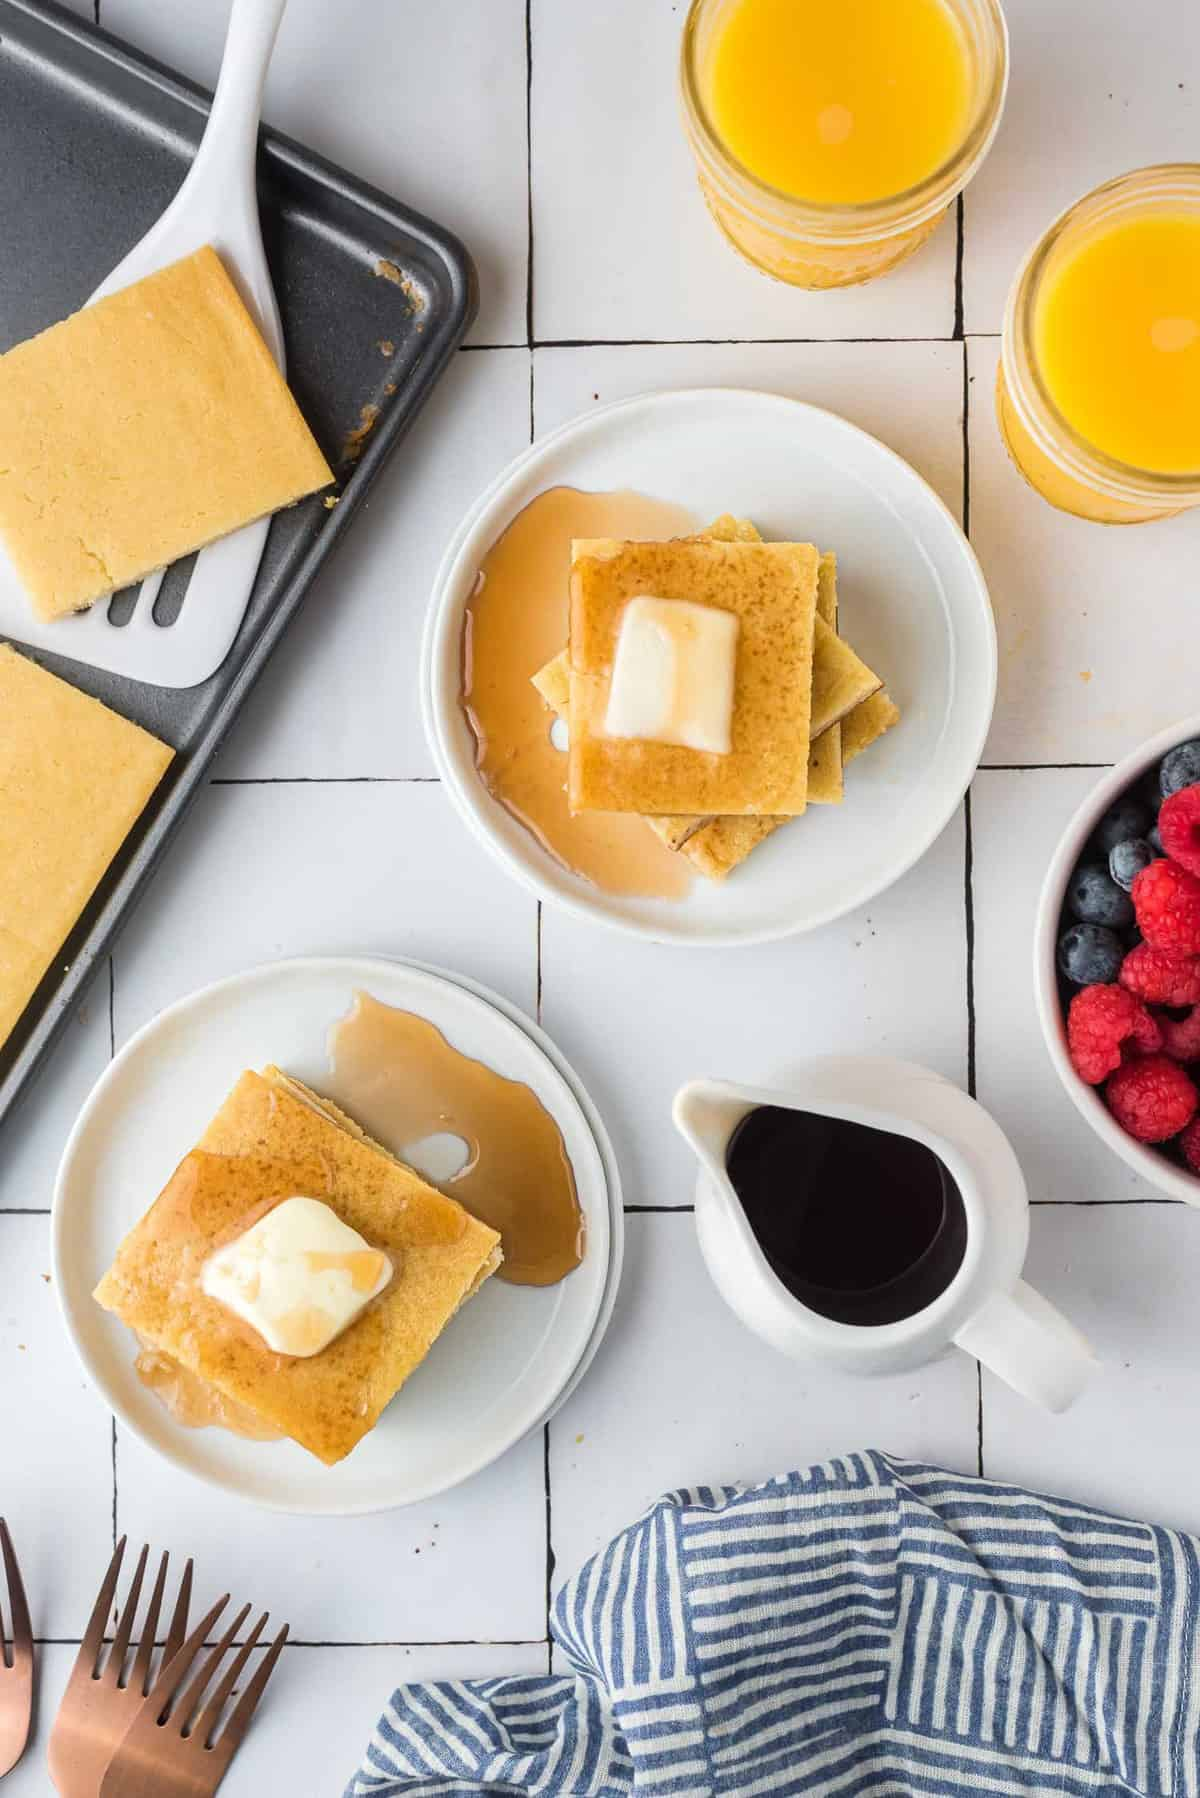 Overhead view of two plates of square pancakes, a sheet pan, fruit, and syrup.